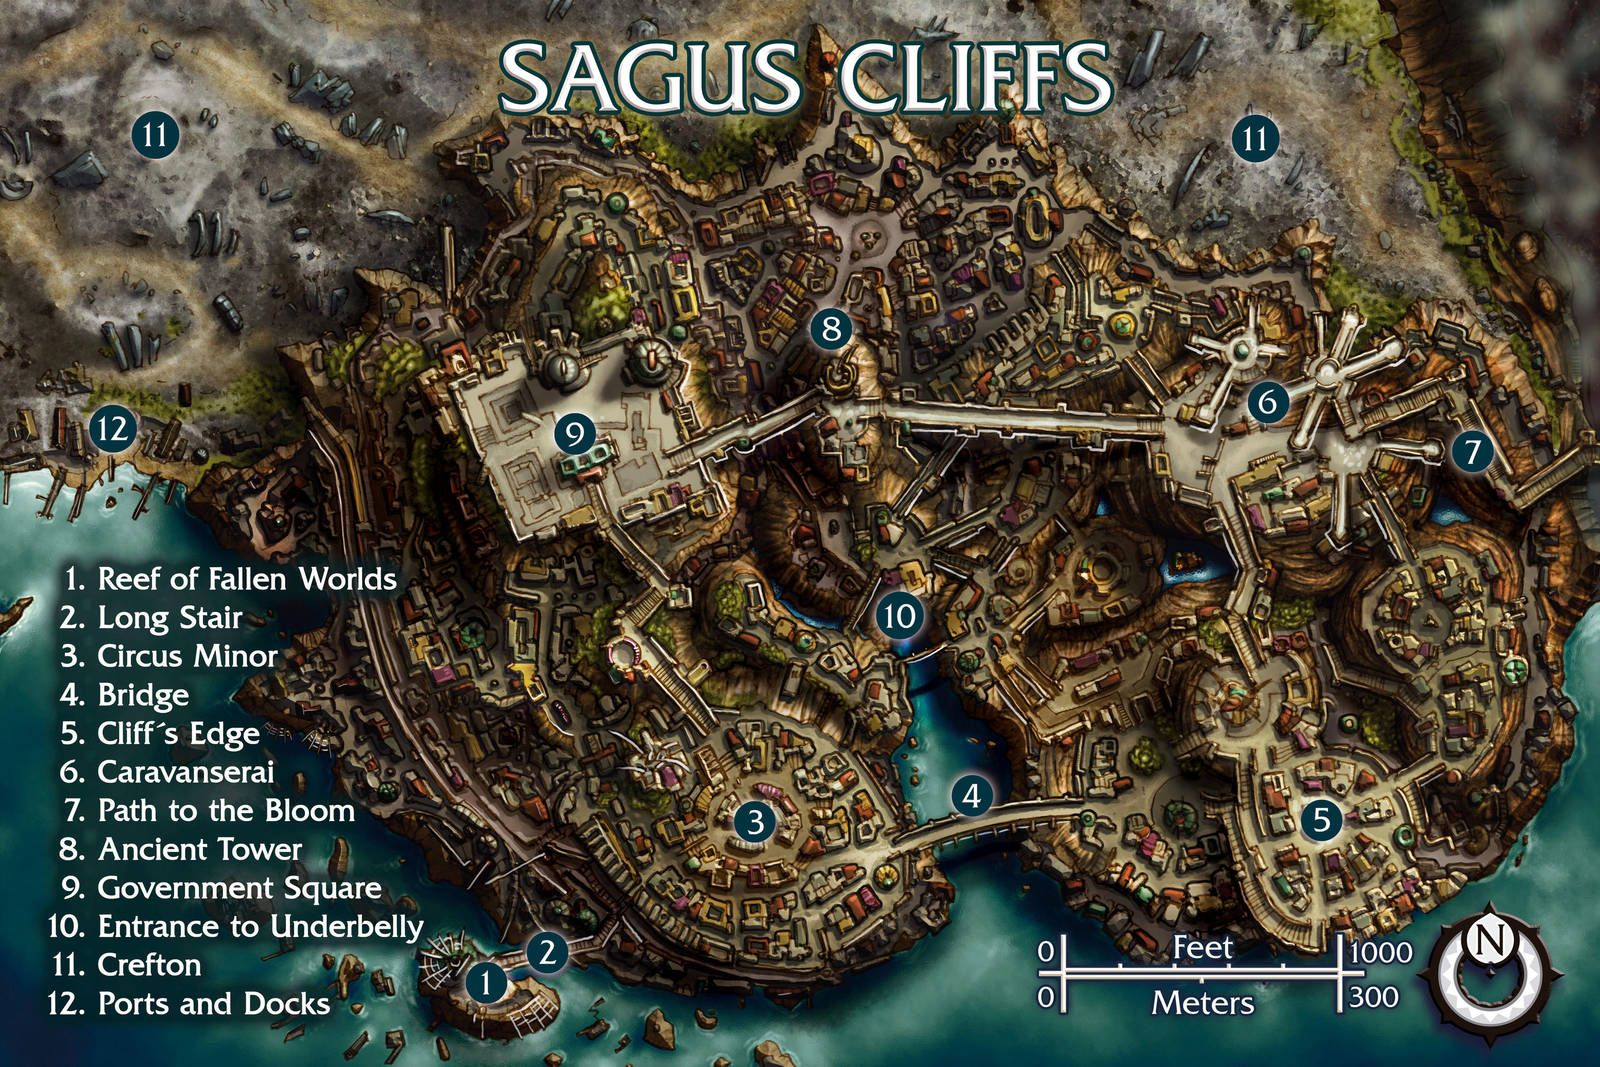 tides of numenera world map Sagus Cliffs By Butterfrog Fantasy Map Fantasy City Map